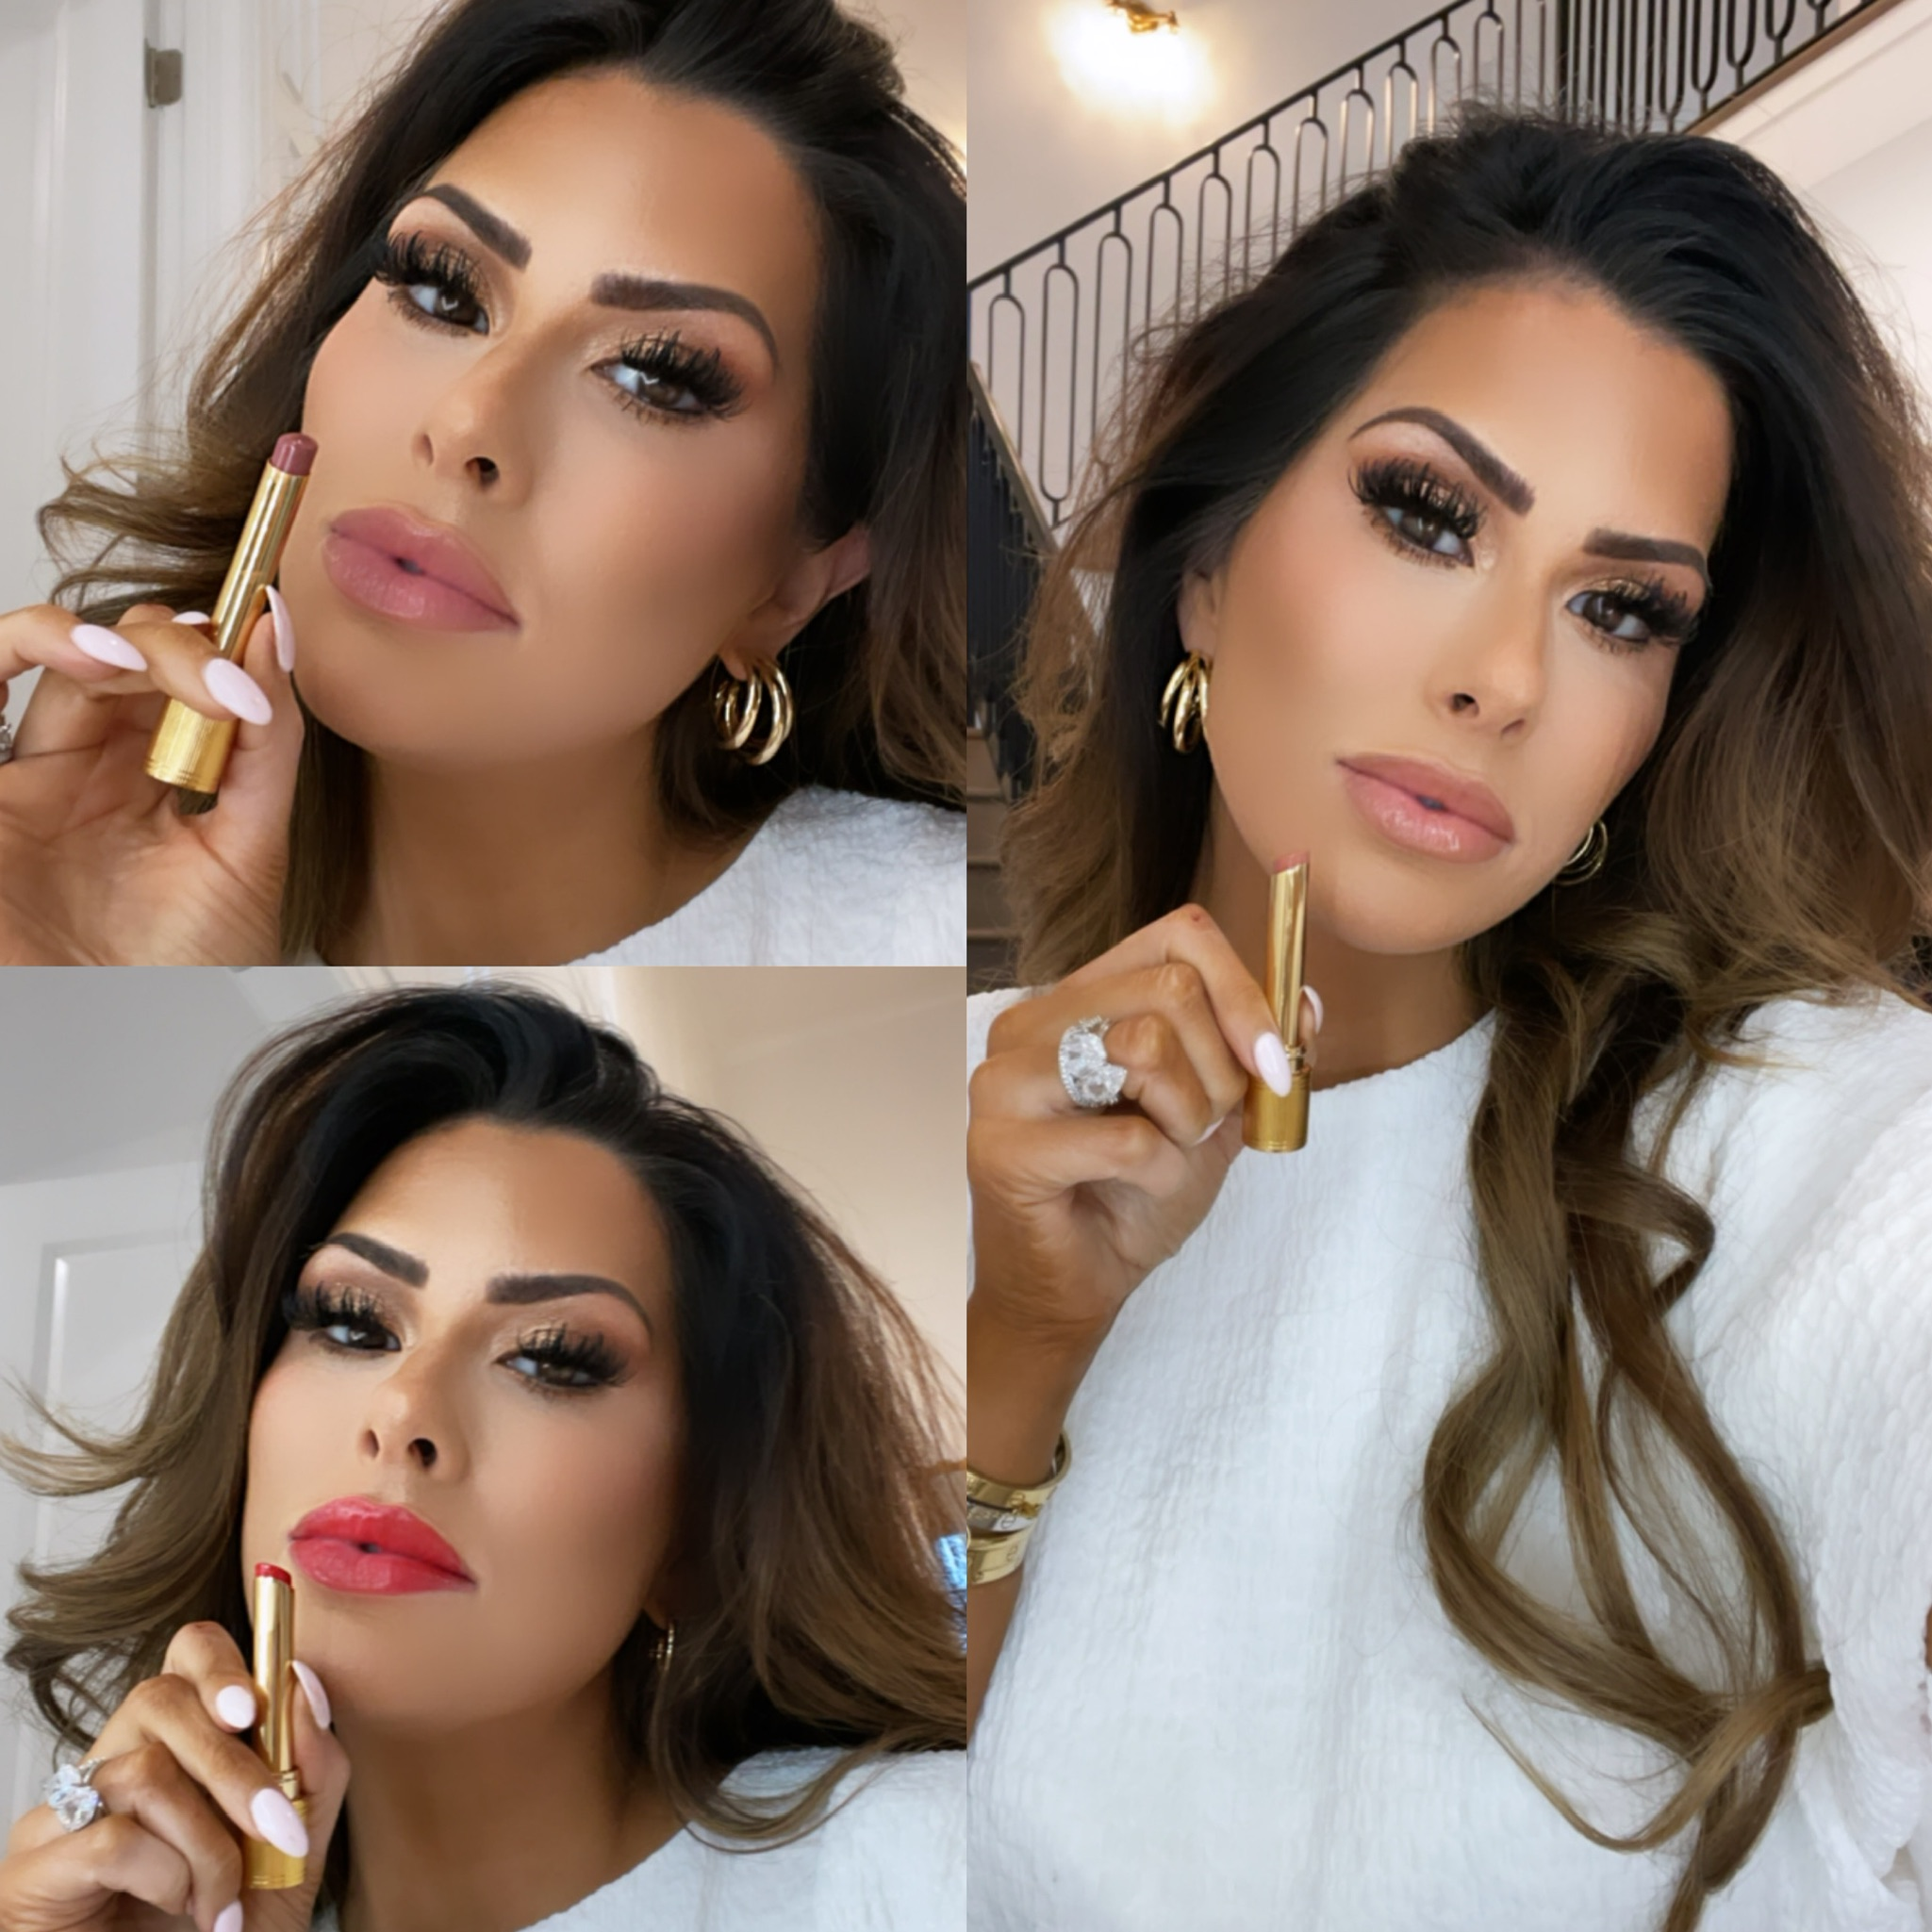 gucci beauty, makeup review, gucci glow lip, best summer lipsticks, Emily Ann gemma makeup routine, gucci lipstick | Instagram Recap by popular US life and style blog, The Sweetest Thing: image of Emily Gemma wearing a white top, gold hoop earrings and holding Gucci lipstick.